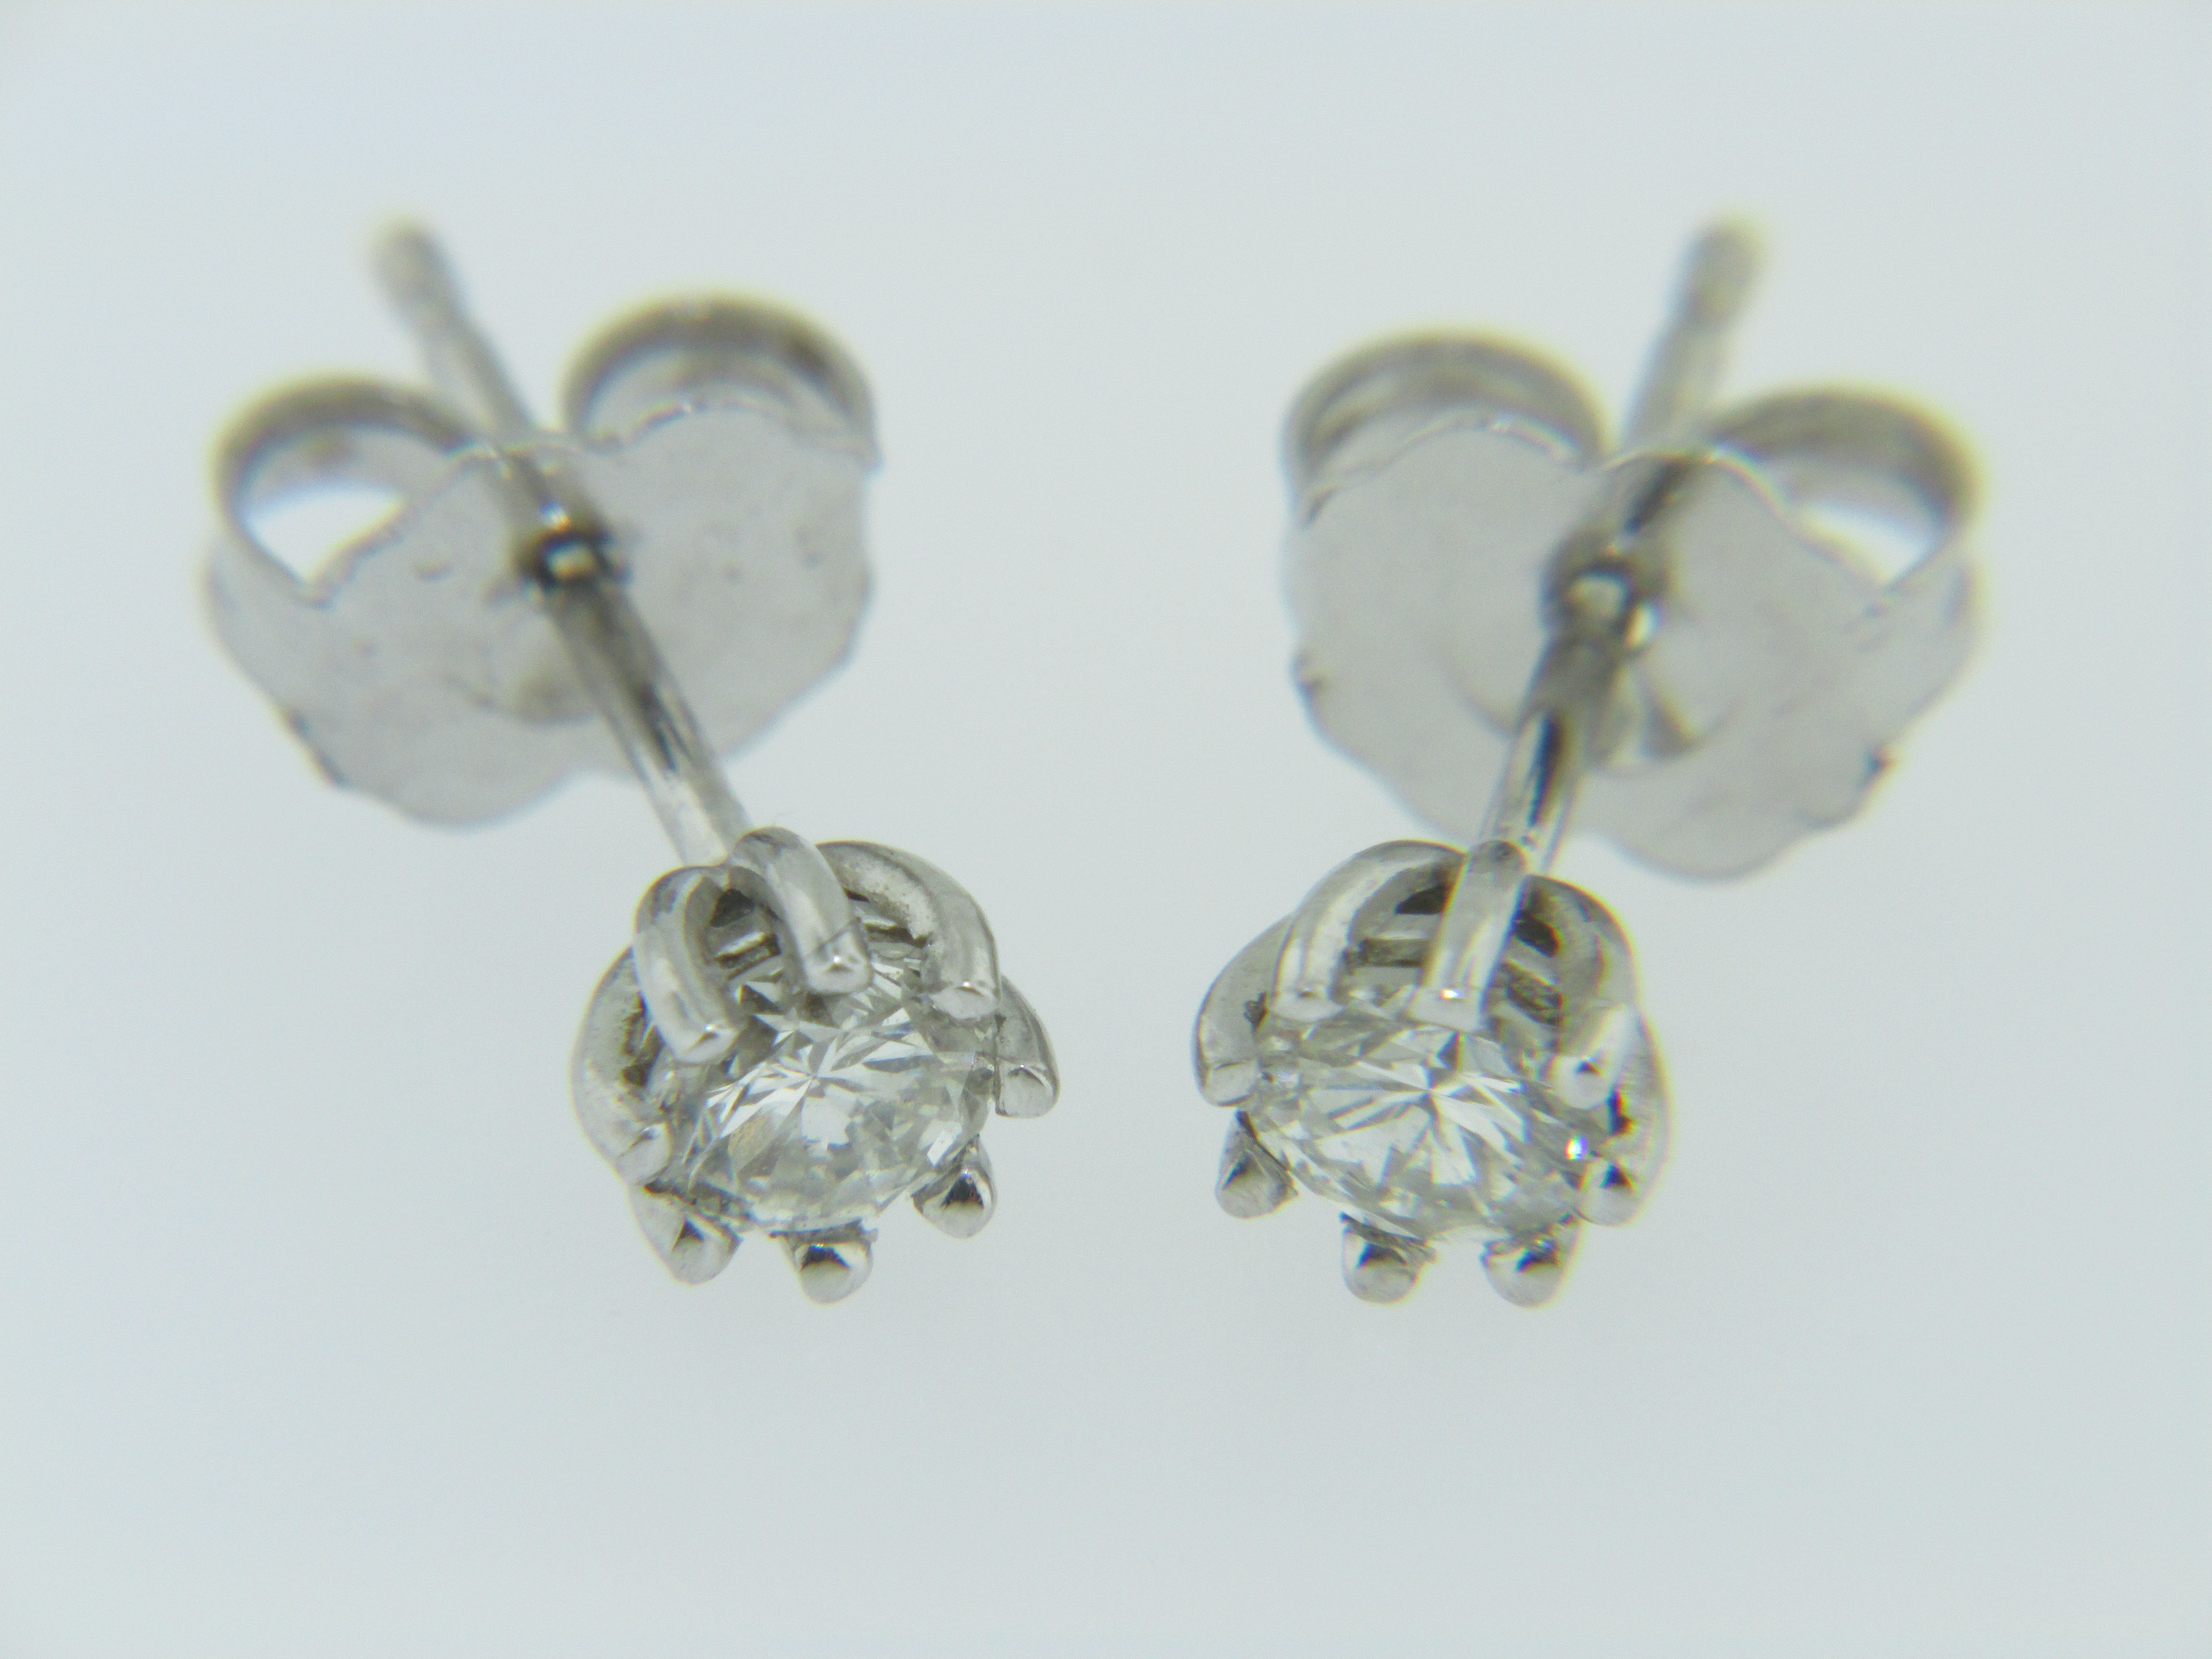 Setting That Measures Approx 35mm In Diameter Butterfly Style  Closure A Beautiful Pair Of Earrings! Diamond Stud Earrings Never Go Out  Of Style!**